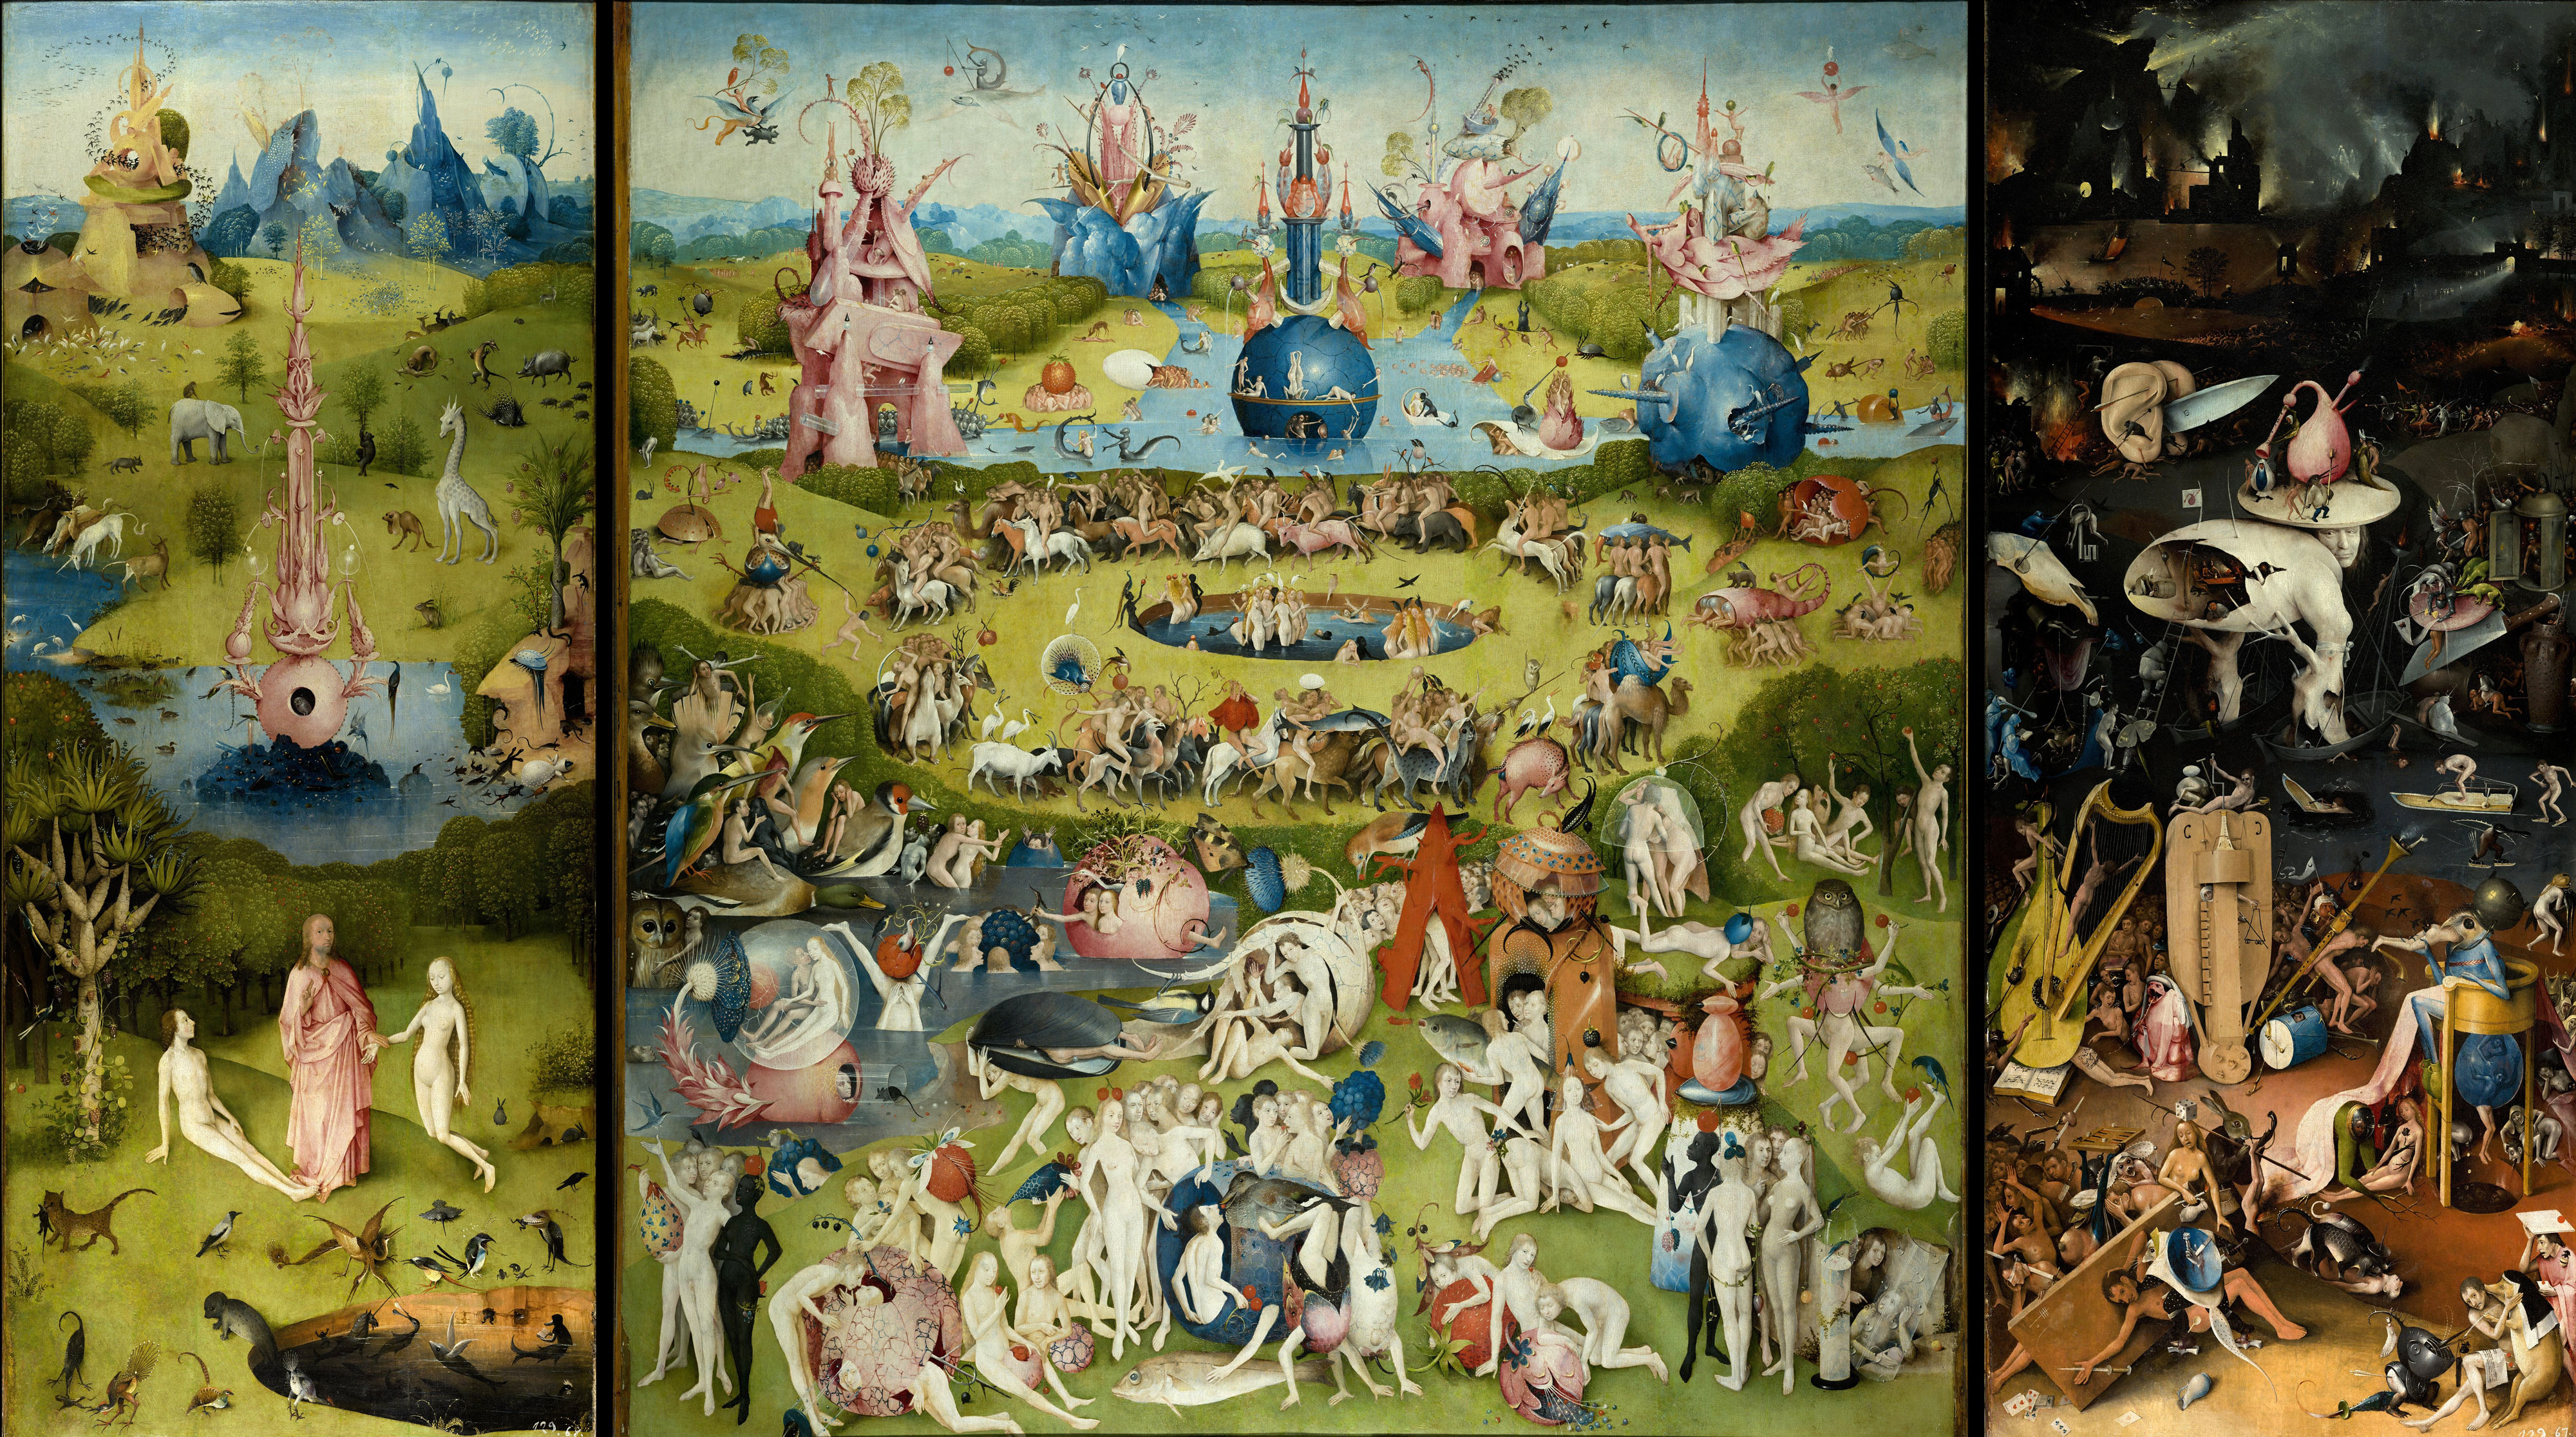 hieronymus-bosch-the-garden-of-earthly-delights-4000